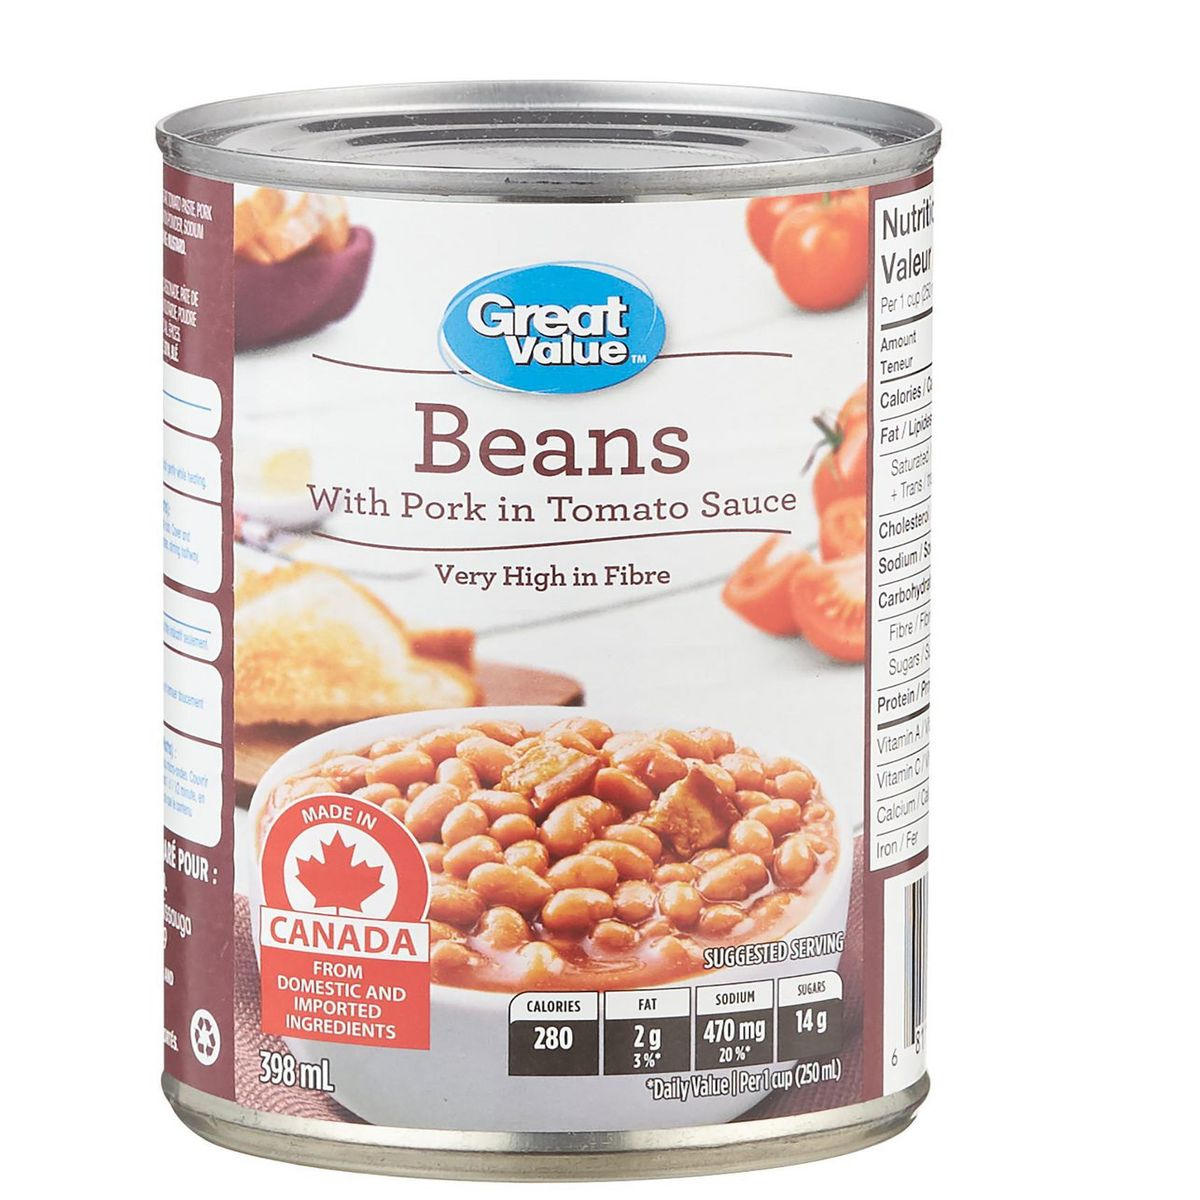 Great Value Baked Beans with Pork in Tomato Sauce 398ml